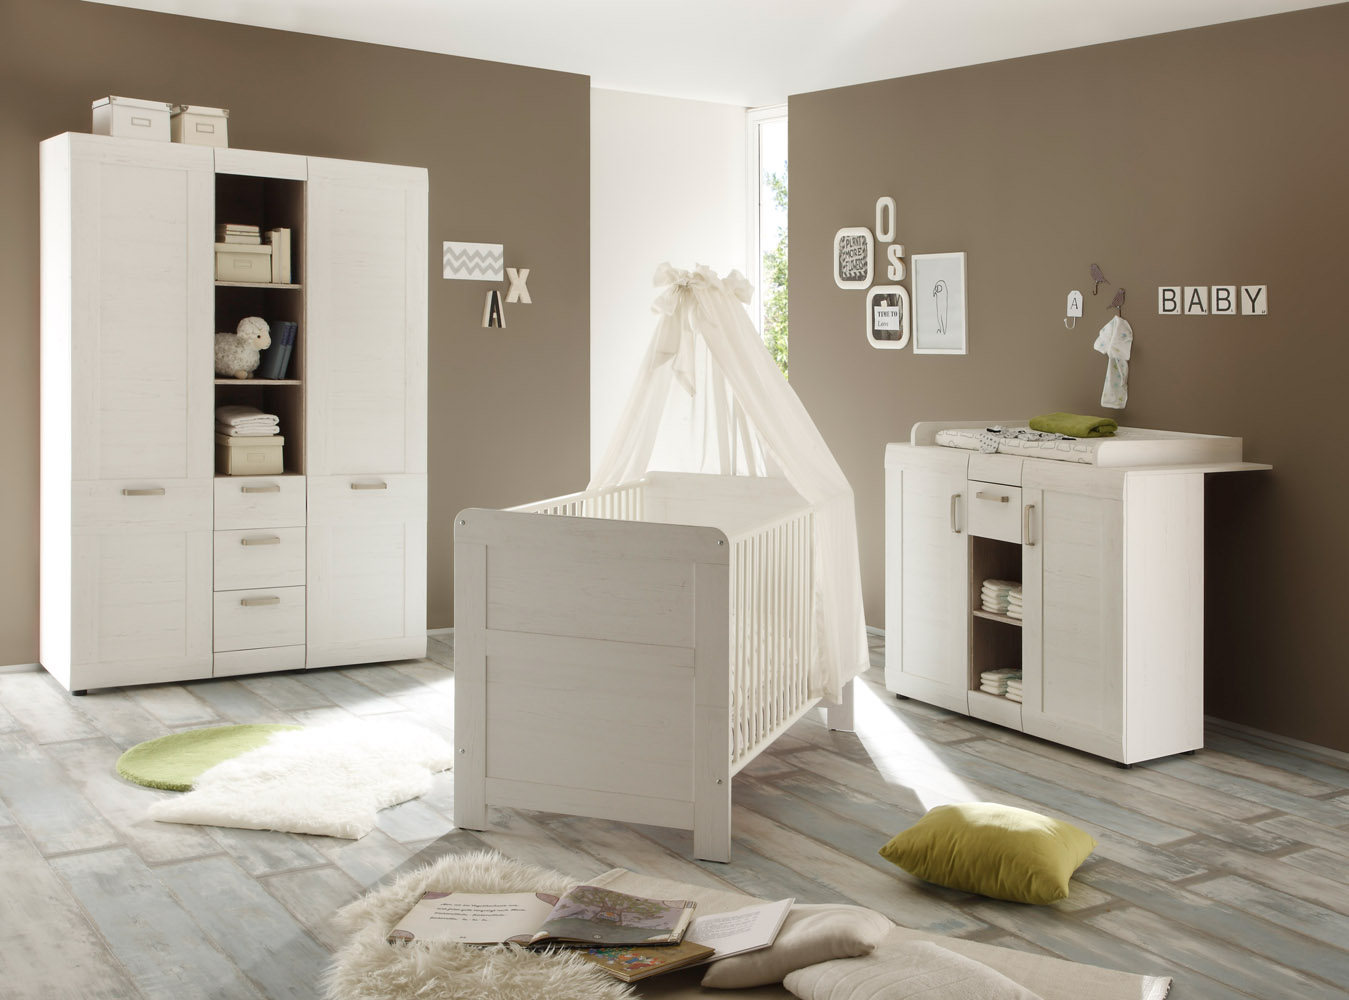 bettkasten f r kinderbett landi von trendteam pinie wei struktur. Black Bedroom Furniture Sets. Home Design Ideas